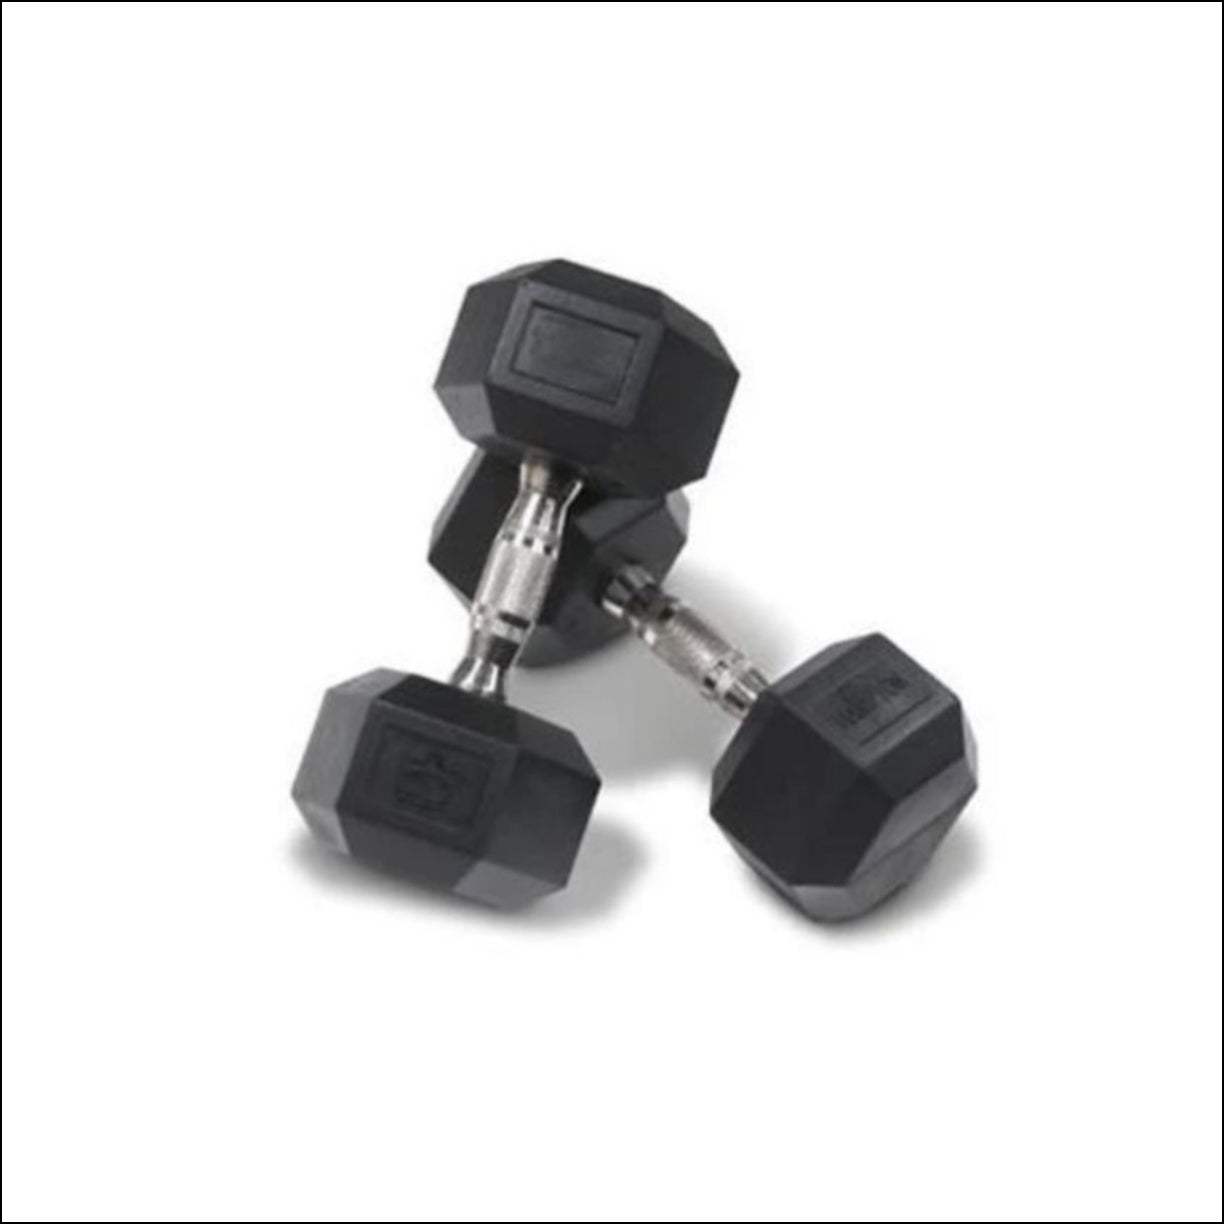 PAIR OF 27.5-kg RUBBER HEX DUMBBELLS  Muscle Motion Rubber coated hexagonal dumbbells with ergonomic handles are designed for increased comfort and improved durability. Rubber coating reduces noise improves life cycle of the product  (other finishes such as chrome and cast iron are subject to chipping and rust). Rubber coated dumbbells are also kinder on floor surfaces. The hexagonal shaped ends are designed to prevent the dumbbell from rolling on the floor or dumbbell rack.